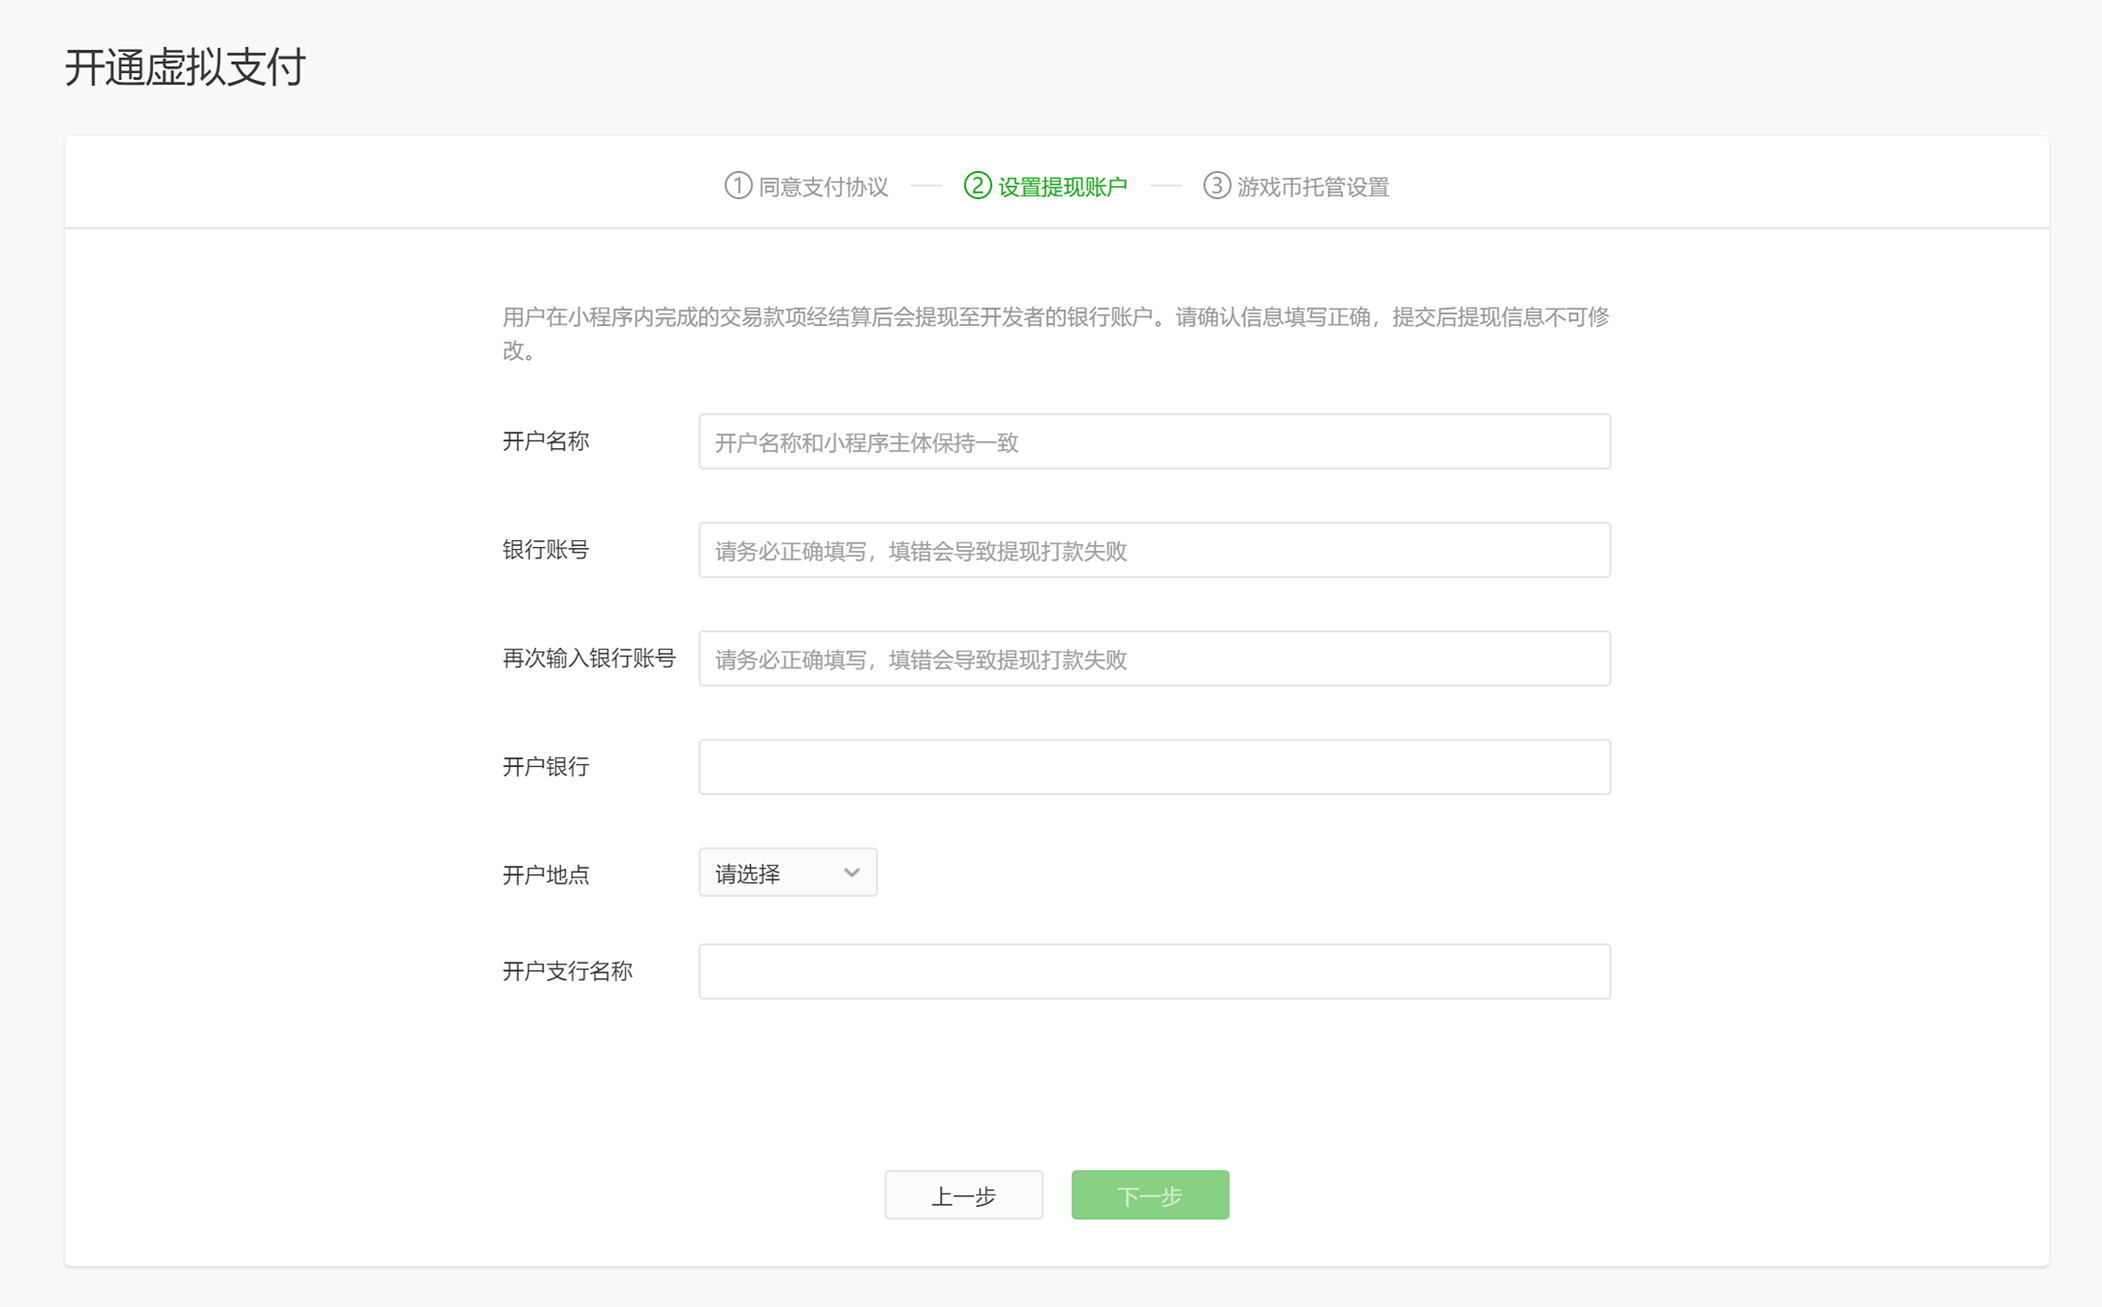 Product Positioning and Function Introduction   WeChat public doc